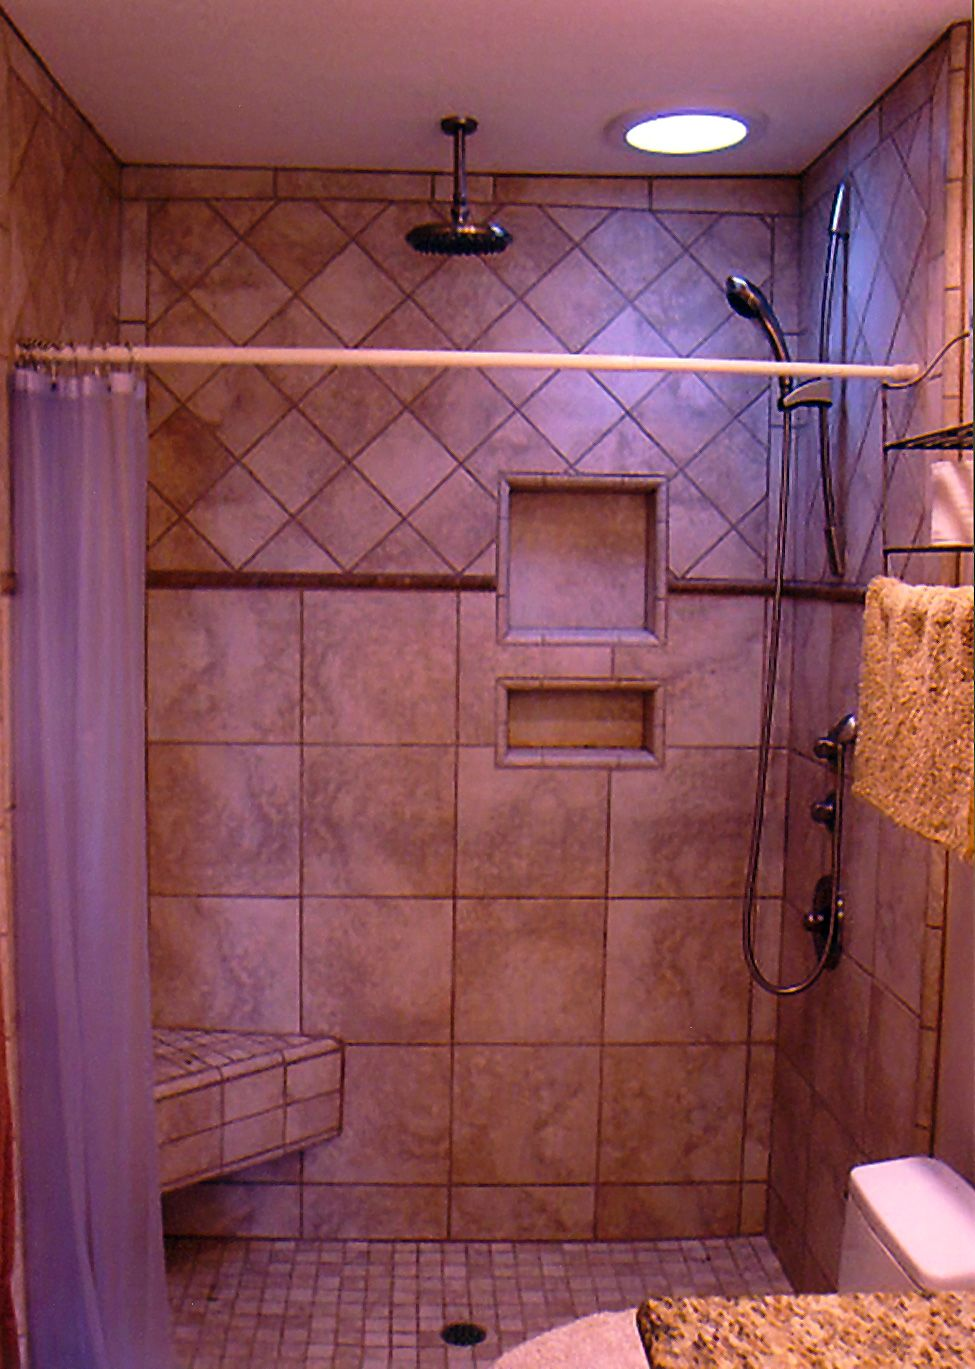 Pictures Of Tiled Shower Stalls